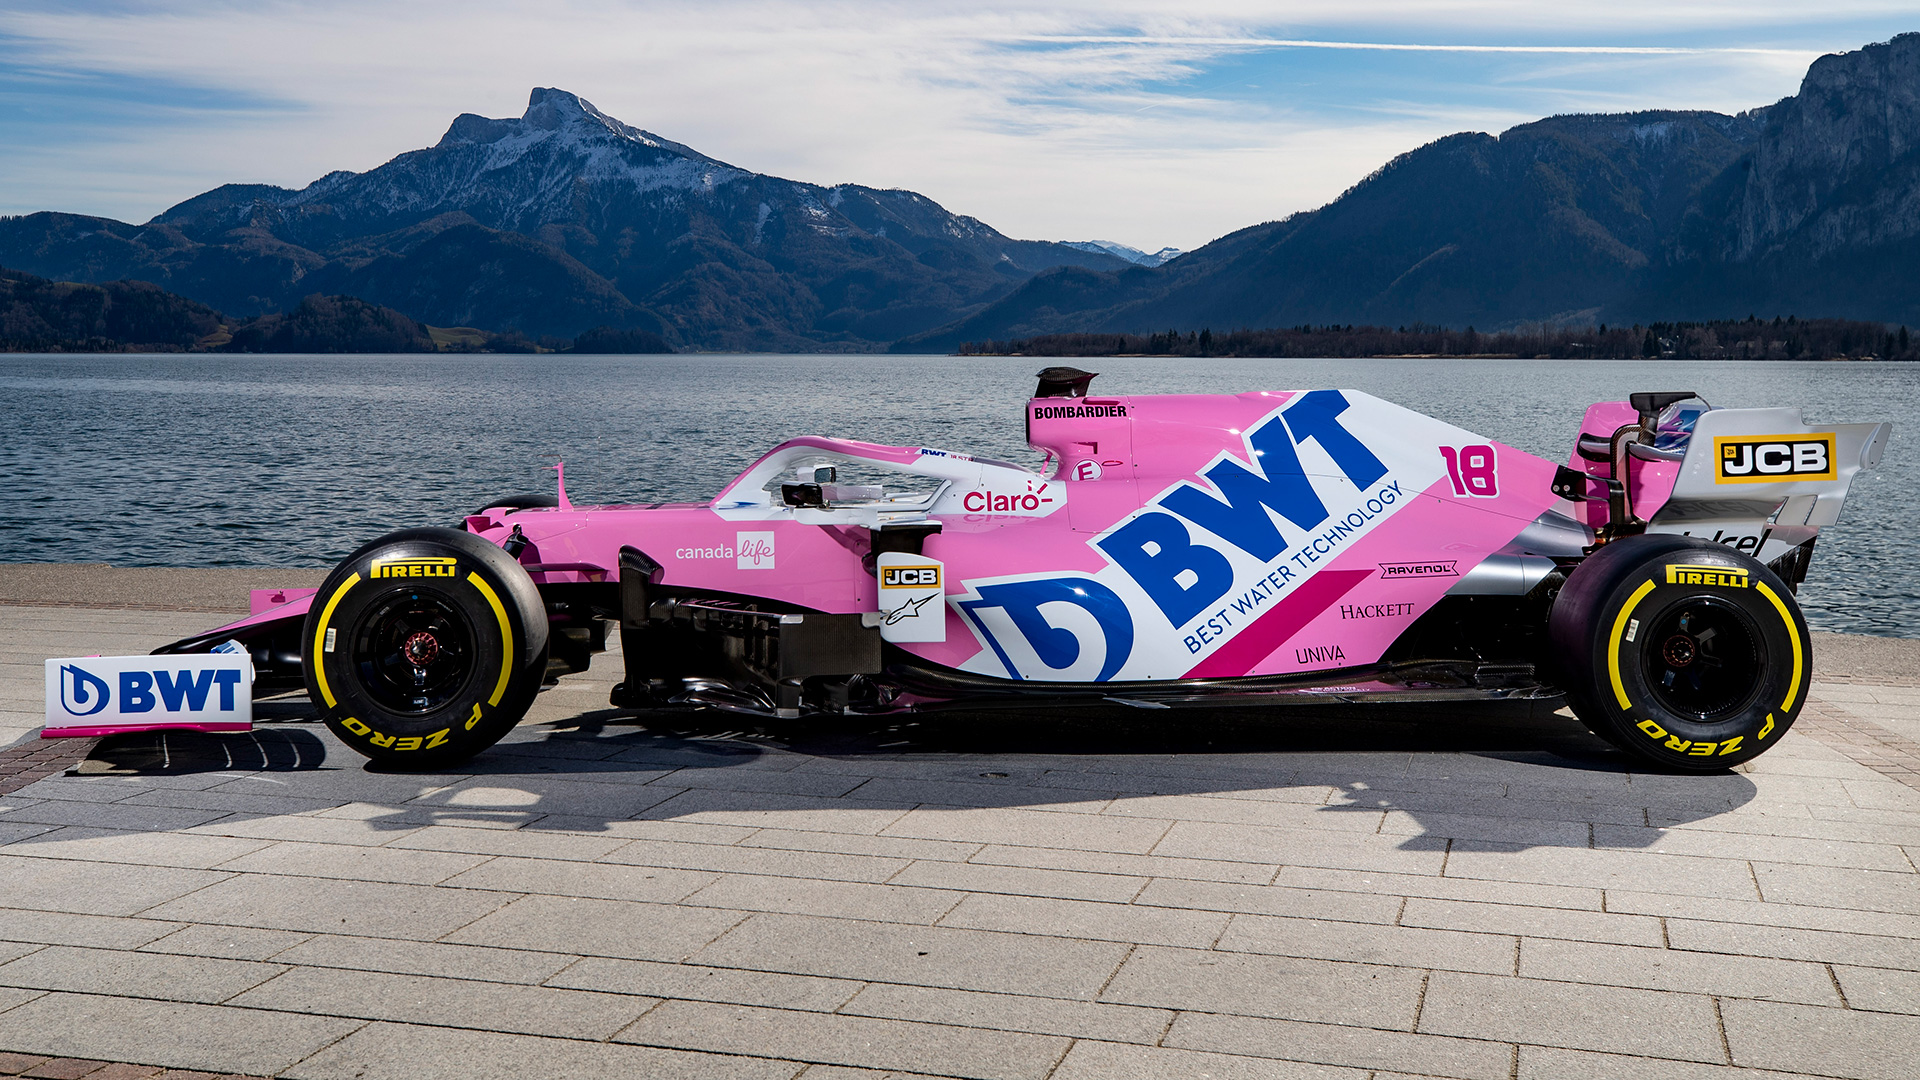 All 2020 F1 Car Liveries - Ranked and Rated   Jomcracer